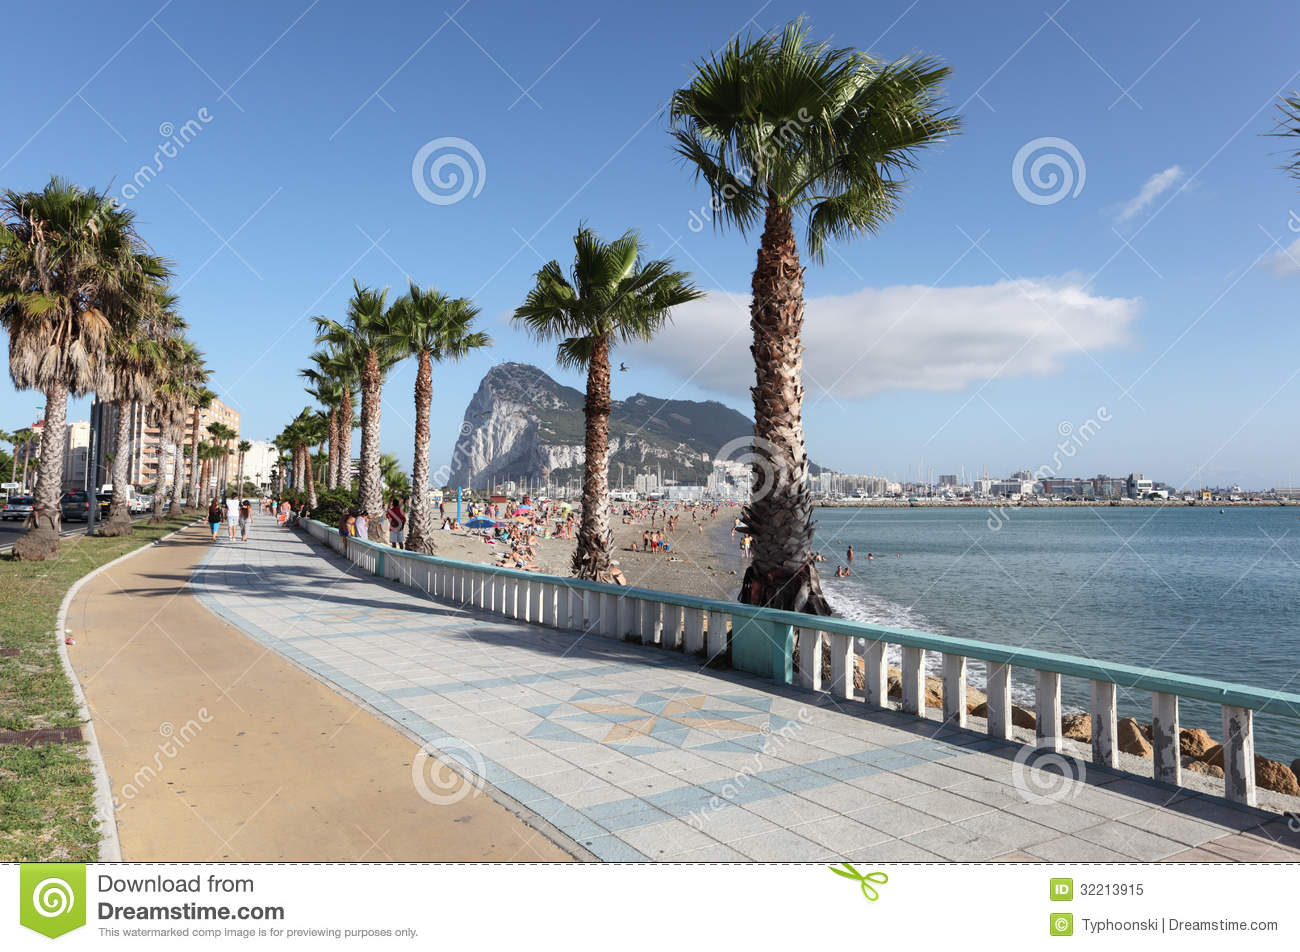 La Linea de la Concepcion Spain  city photo : Promenade in La Linea de la Concepcion, Spain. Rock of Gibraltar in ...